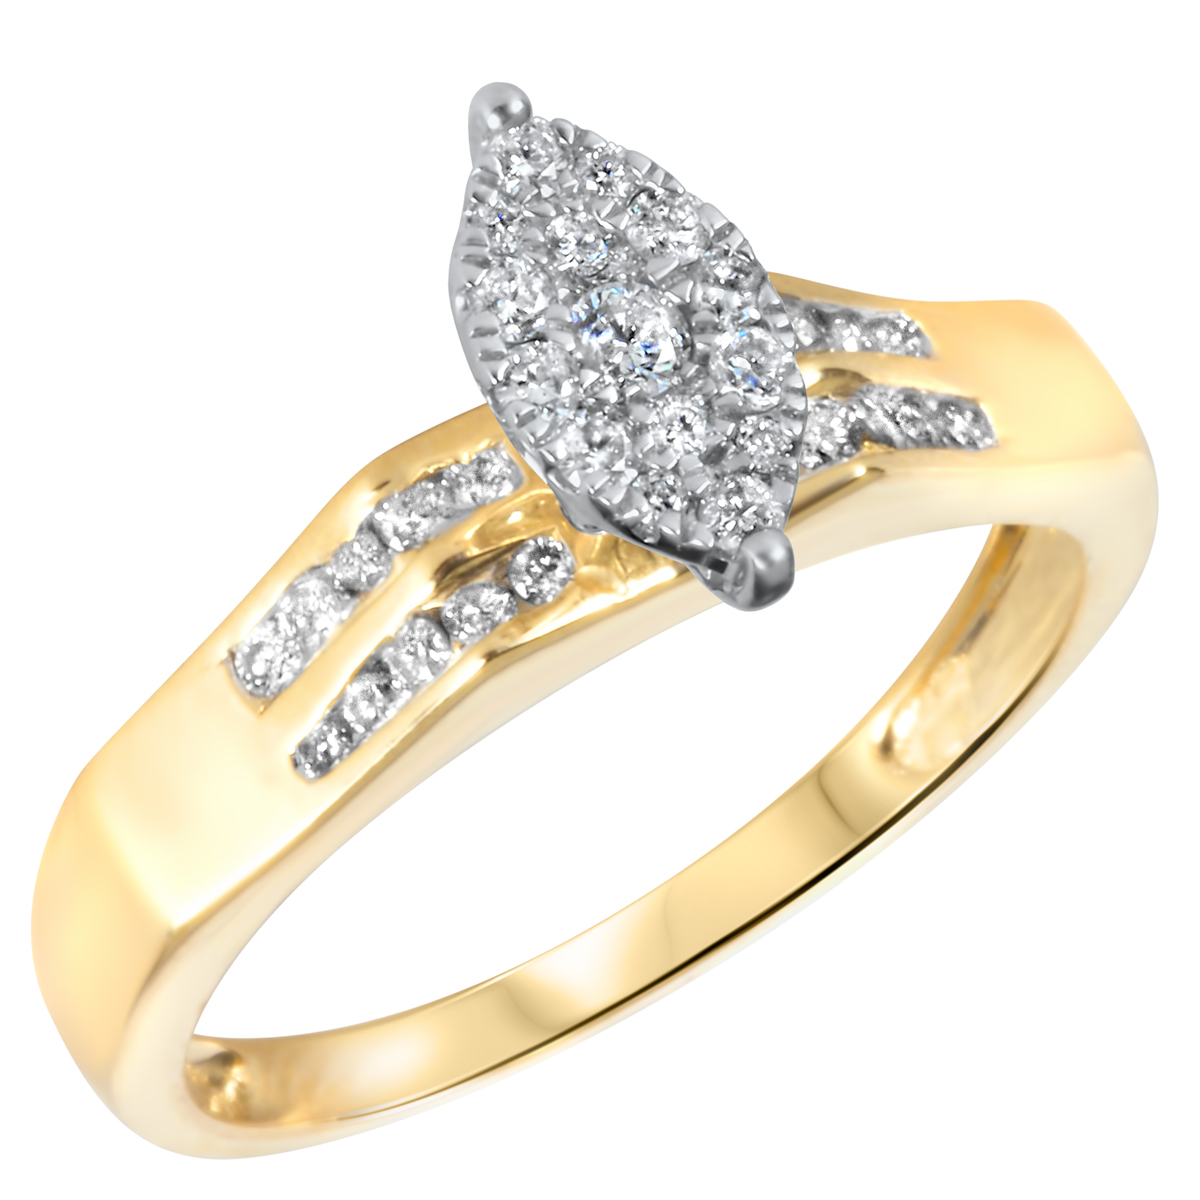 ct t w diamond women s bridal wedding ring set 14k yellow gold